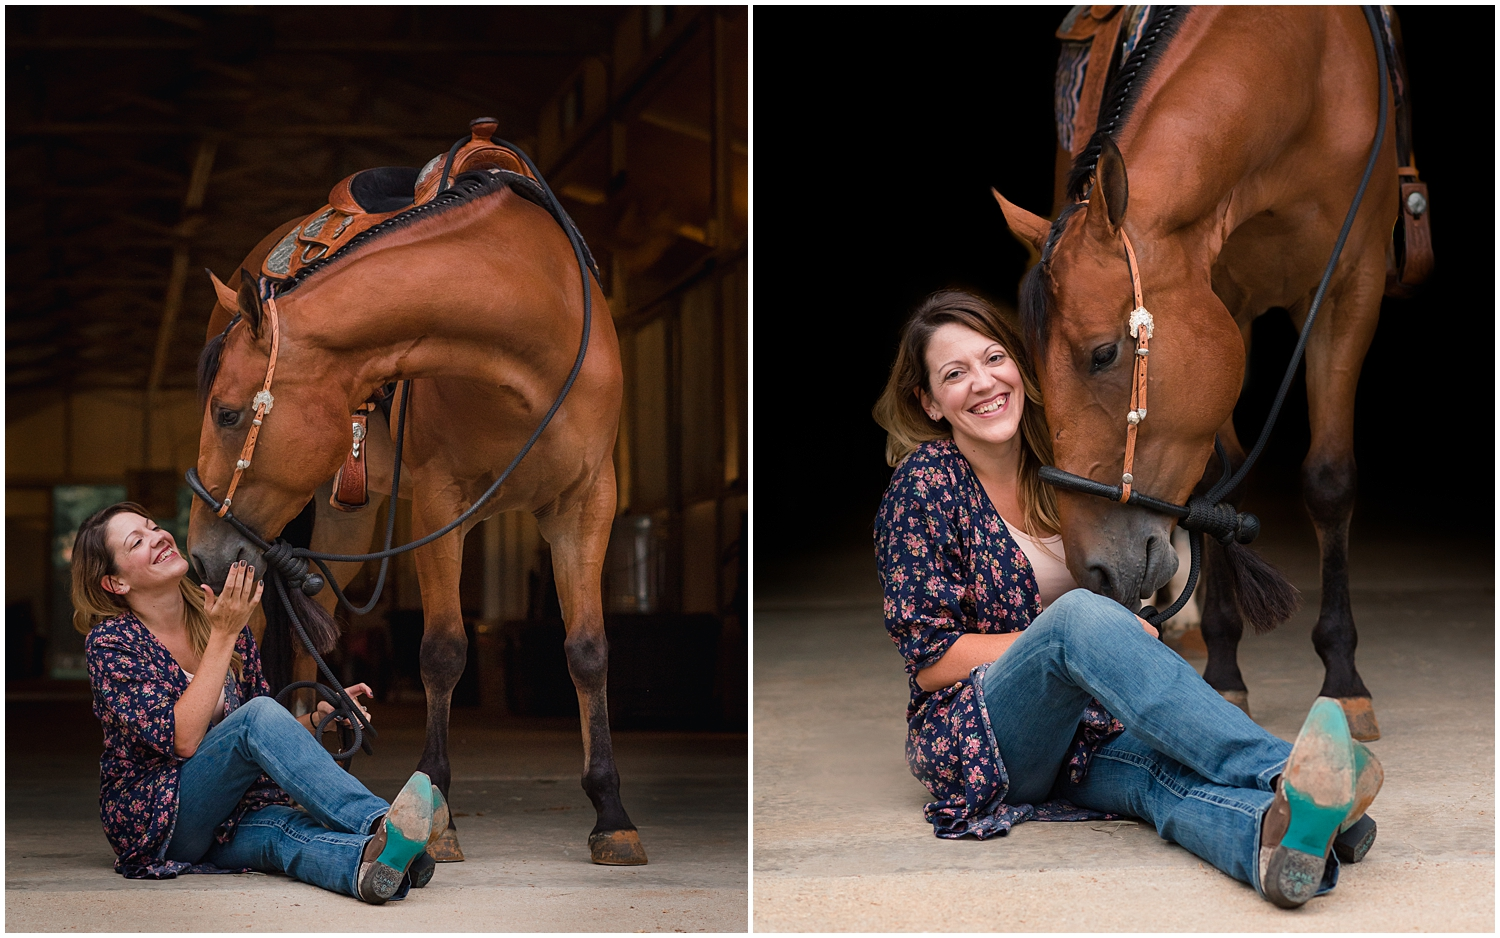 Bay Western Pleasure-bred Quarter Horse and his rider photographed in Argyle, Texas, by Rachel Griffin Photography.